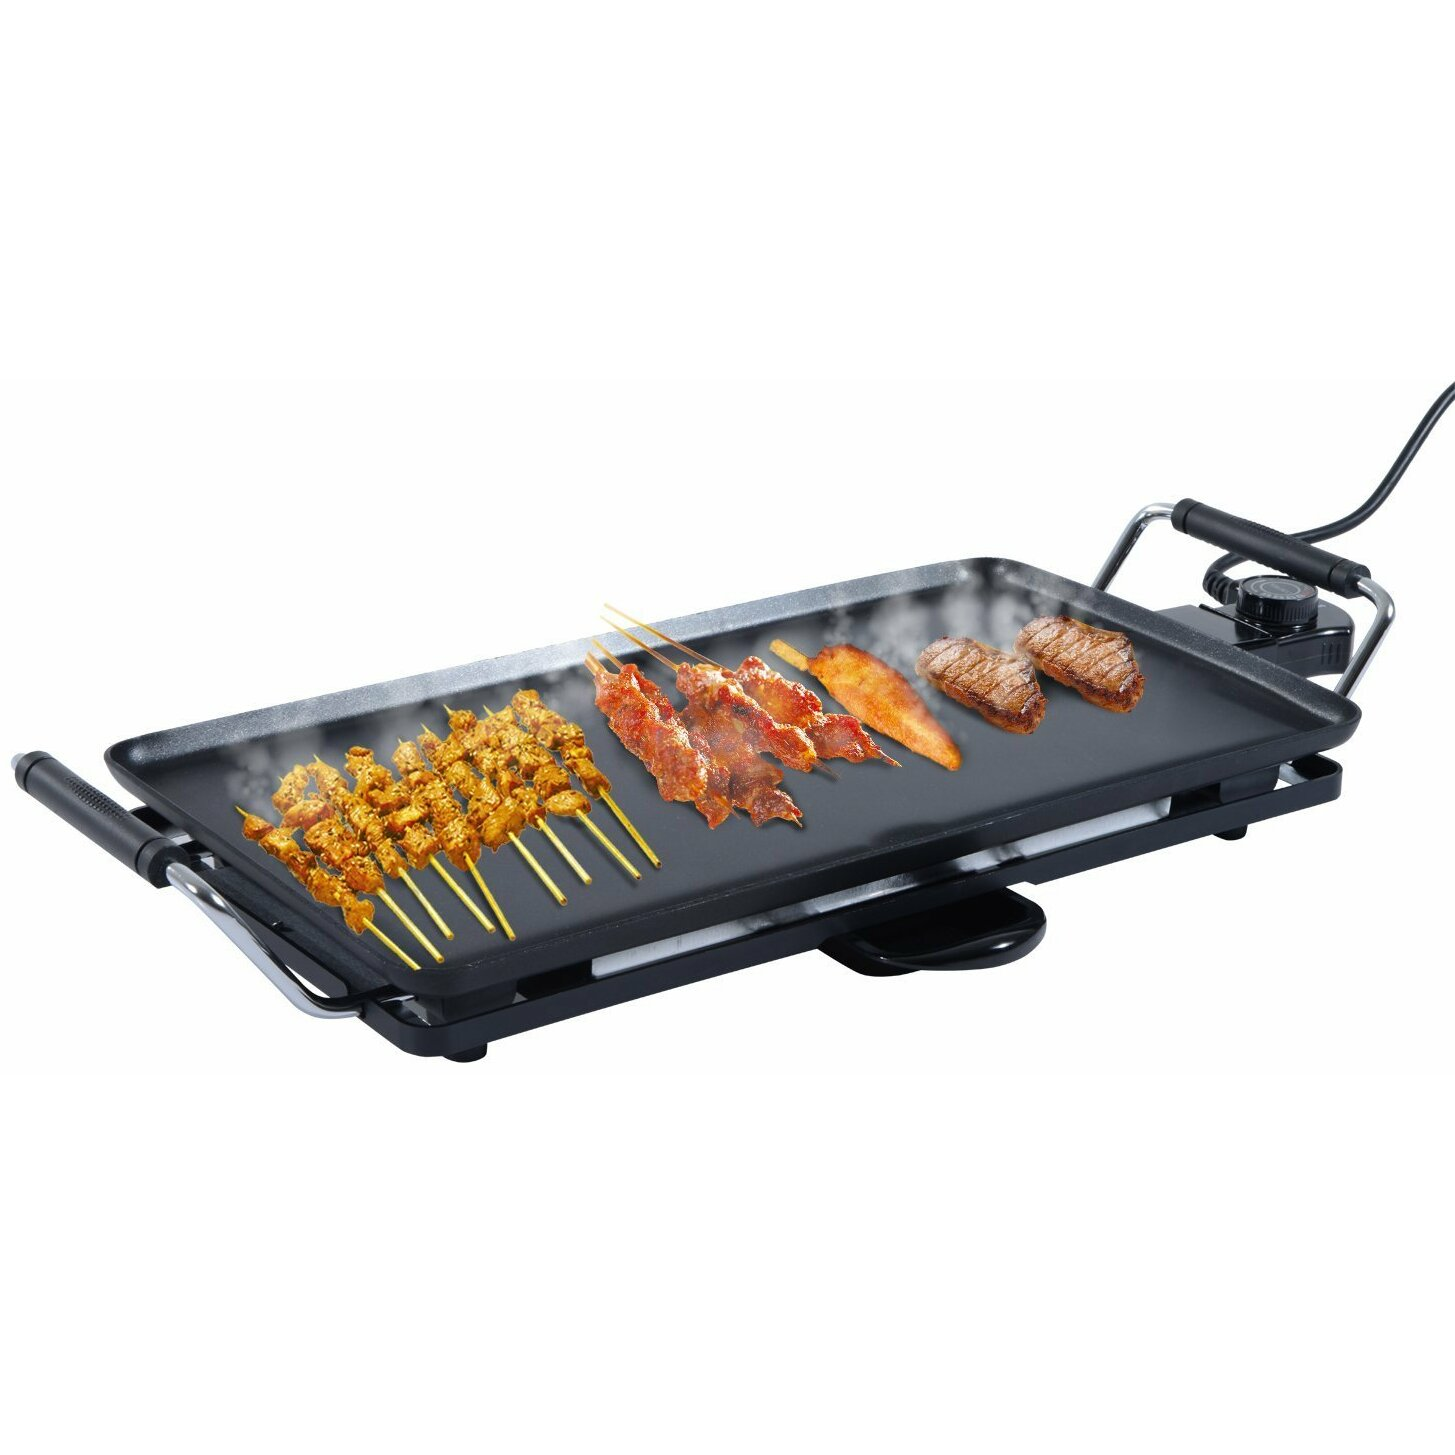 Outsunny plate bbq kitchen hot cooking table top barbecue grill wayfair uk - Table top barbecue grill ...